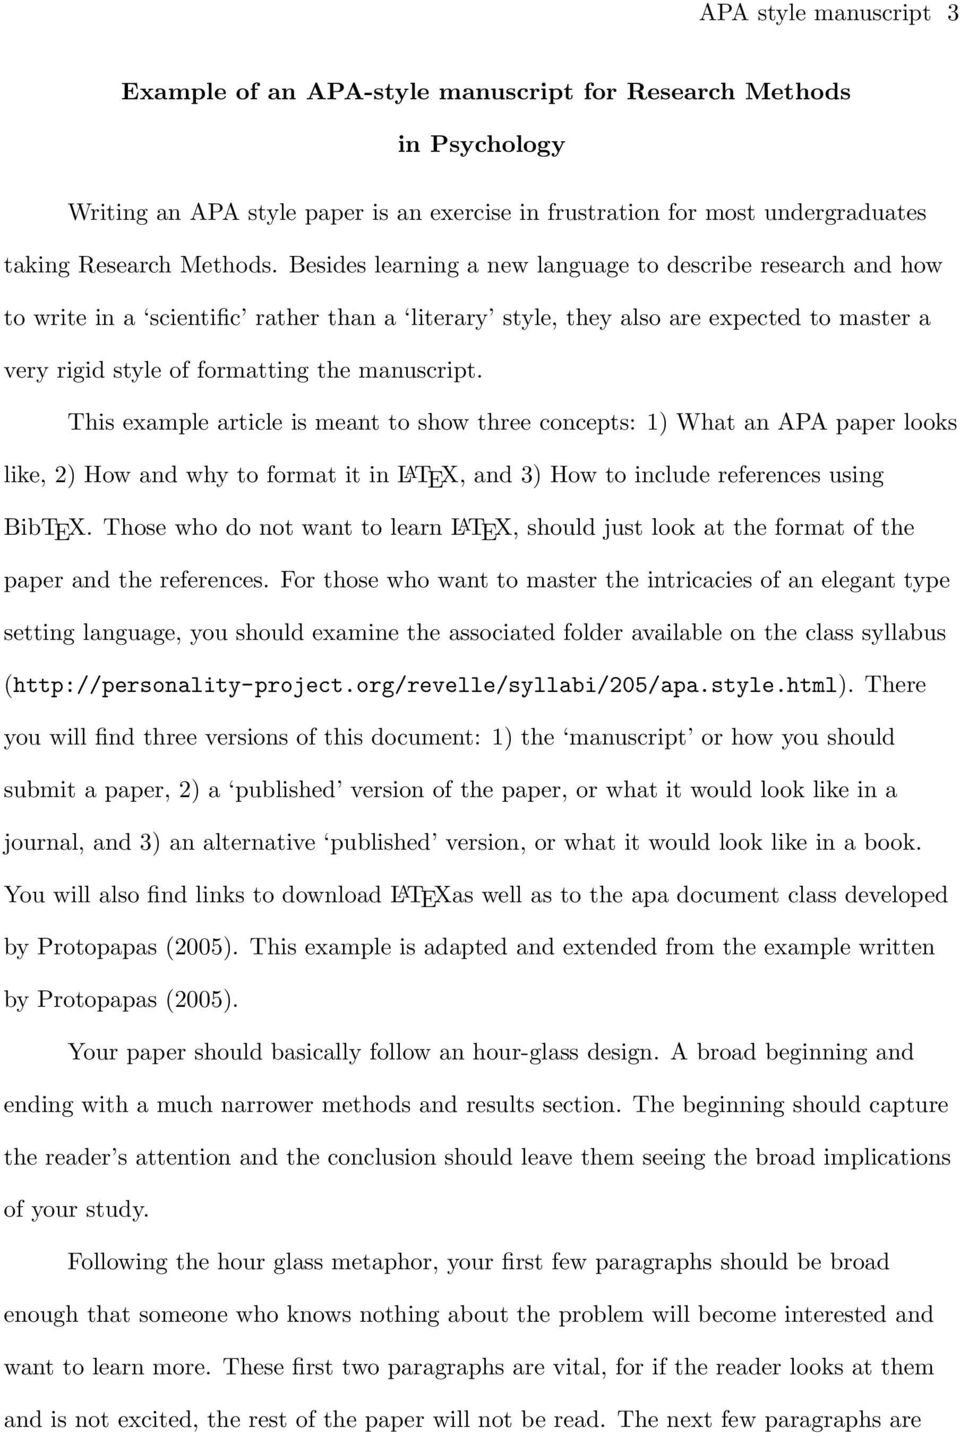 015 Methods Example For Research Paper Page 3 Breathtaking Of Materials And Section A Writing Method Results Full